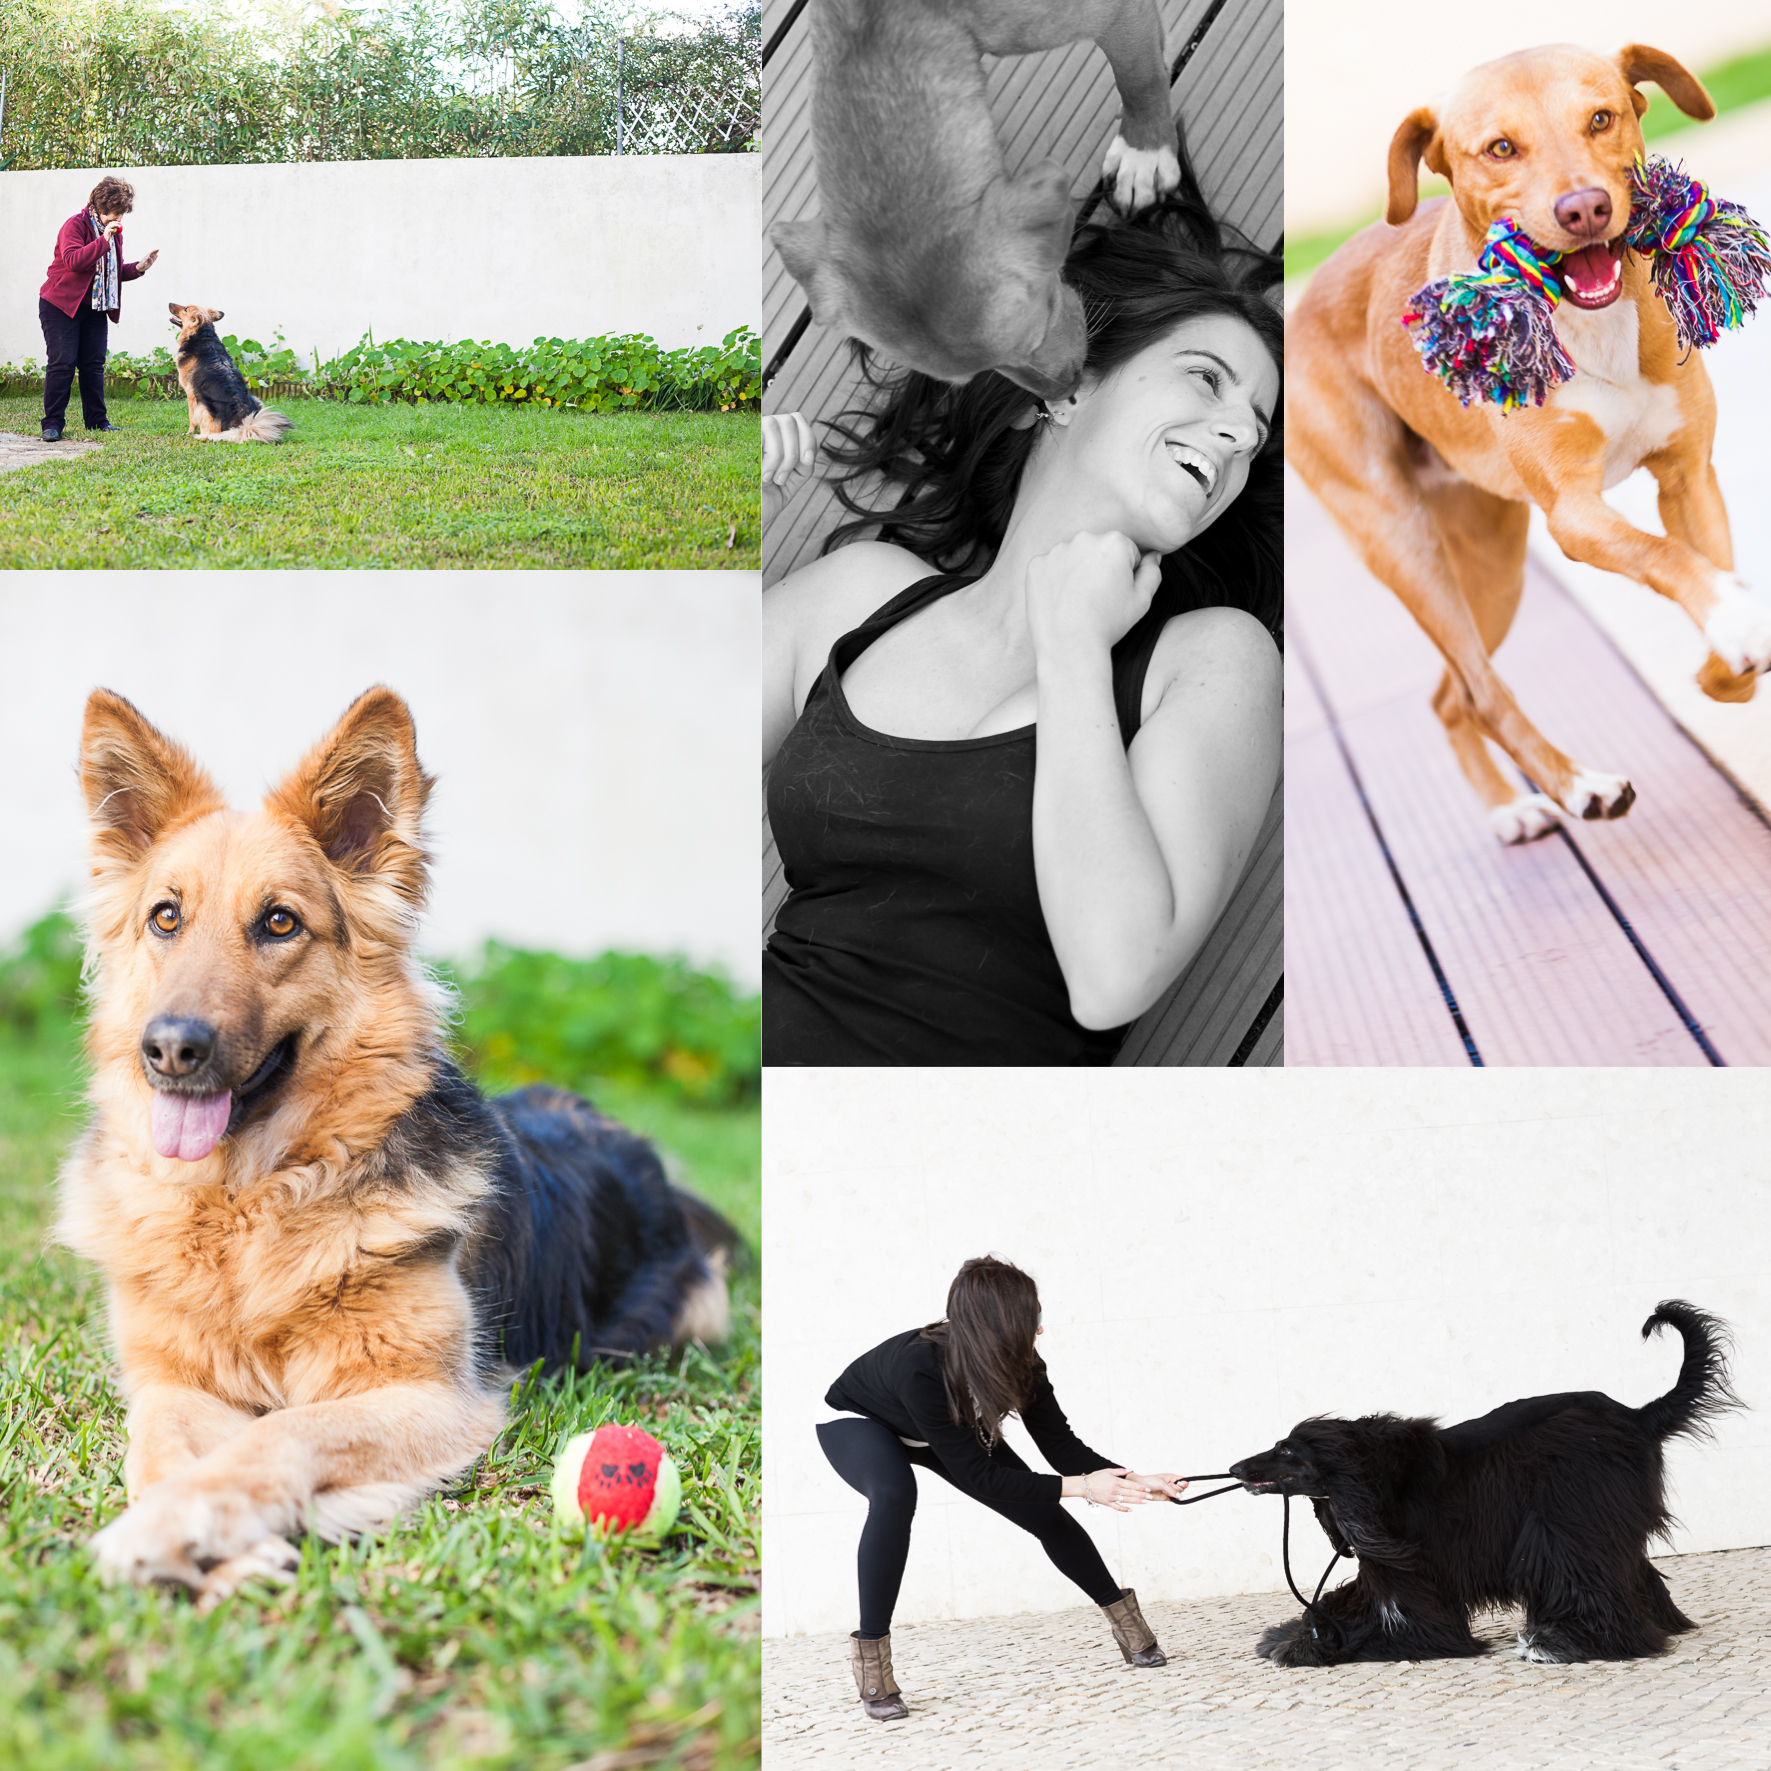 Pet Photography can be a challenge if you're the owner of the pet...